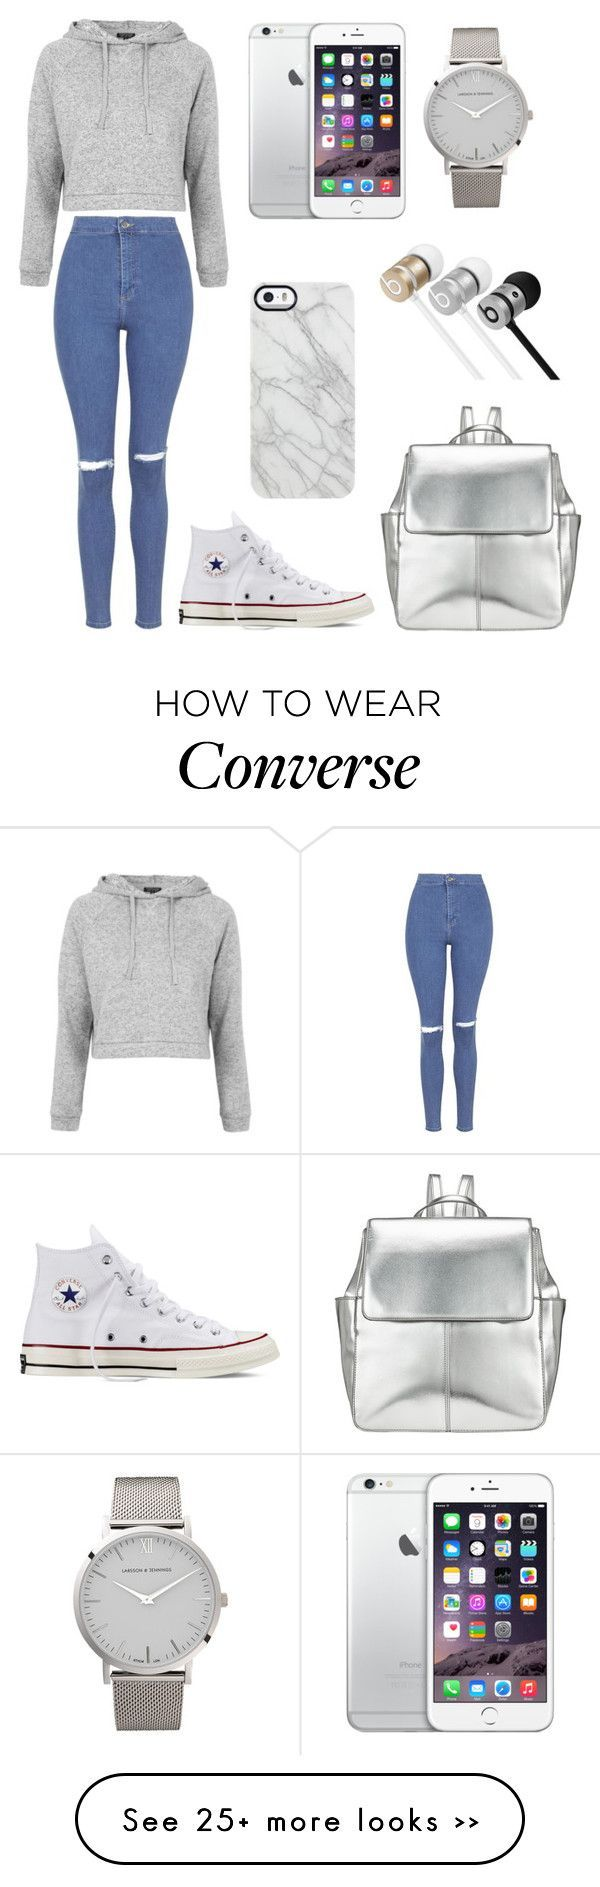 """Back to School in Style #2"" by stephanie-rozek-paris on Polyvore featuring Topshop, Converse, Larsson & Jennings, Kin by John Lewis, Beats by Dr. Dre and Uncommon"